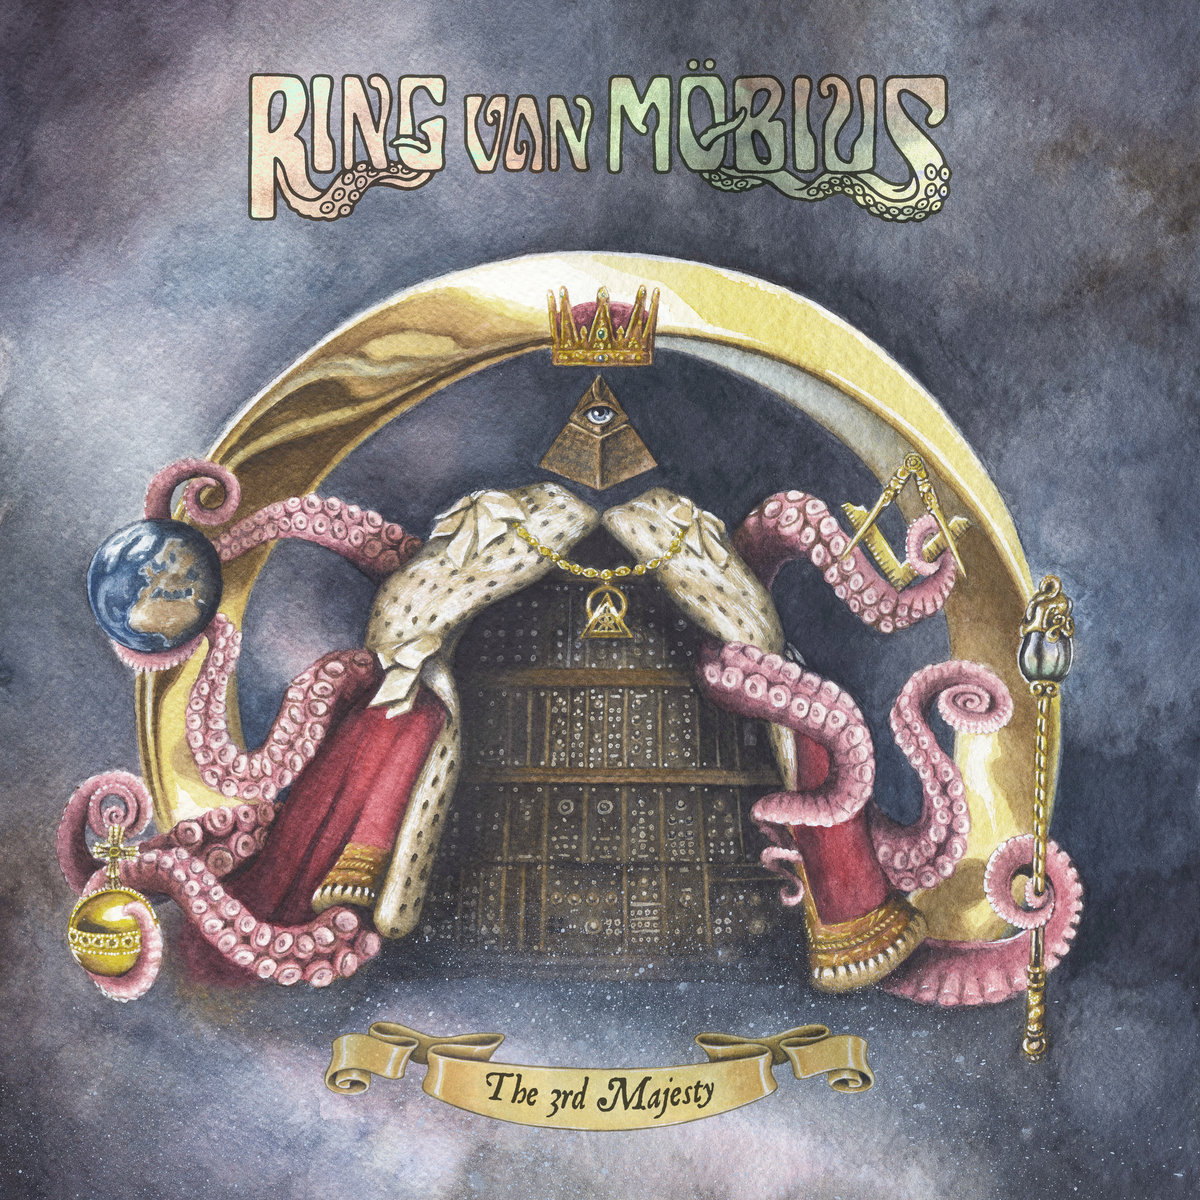 Reseña: RING VAN MÖBIUS .- 'The 3rd Majesty'